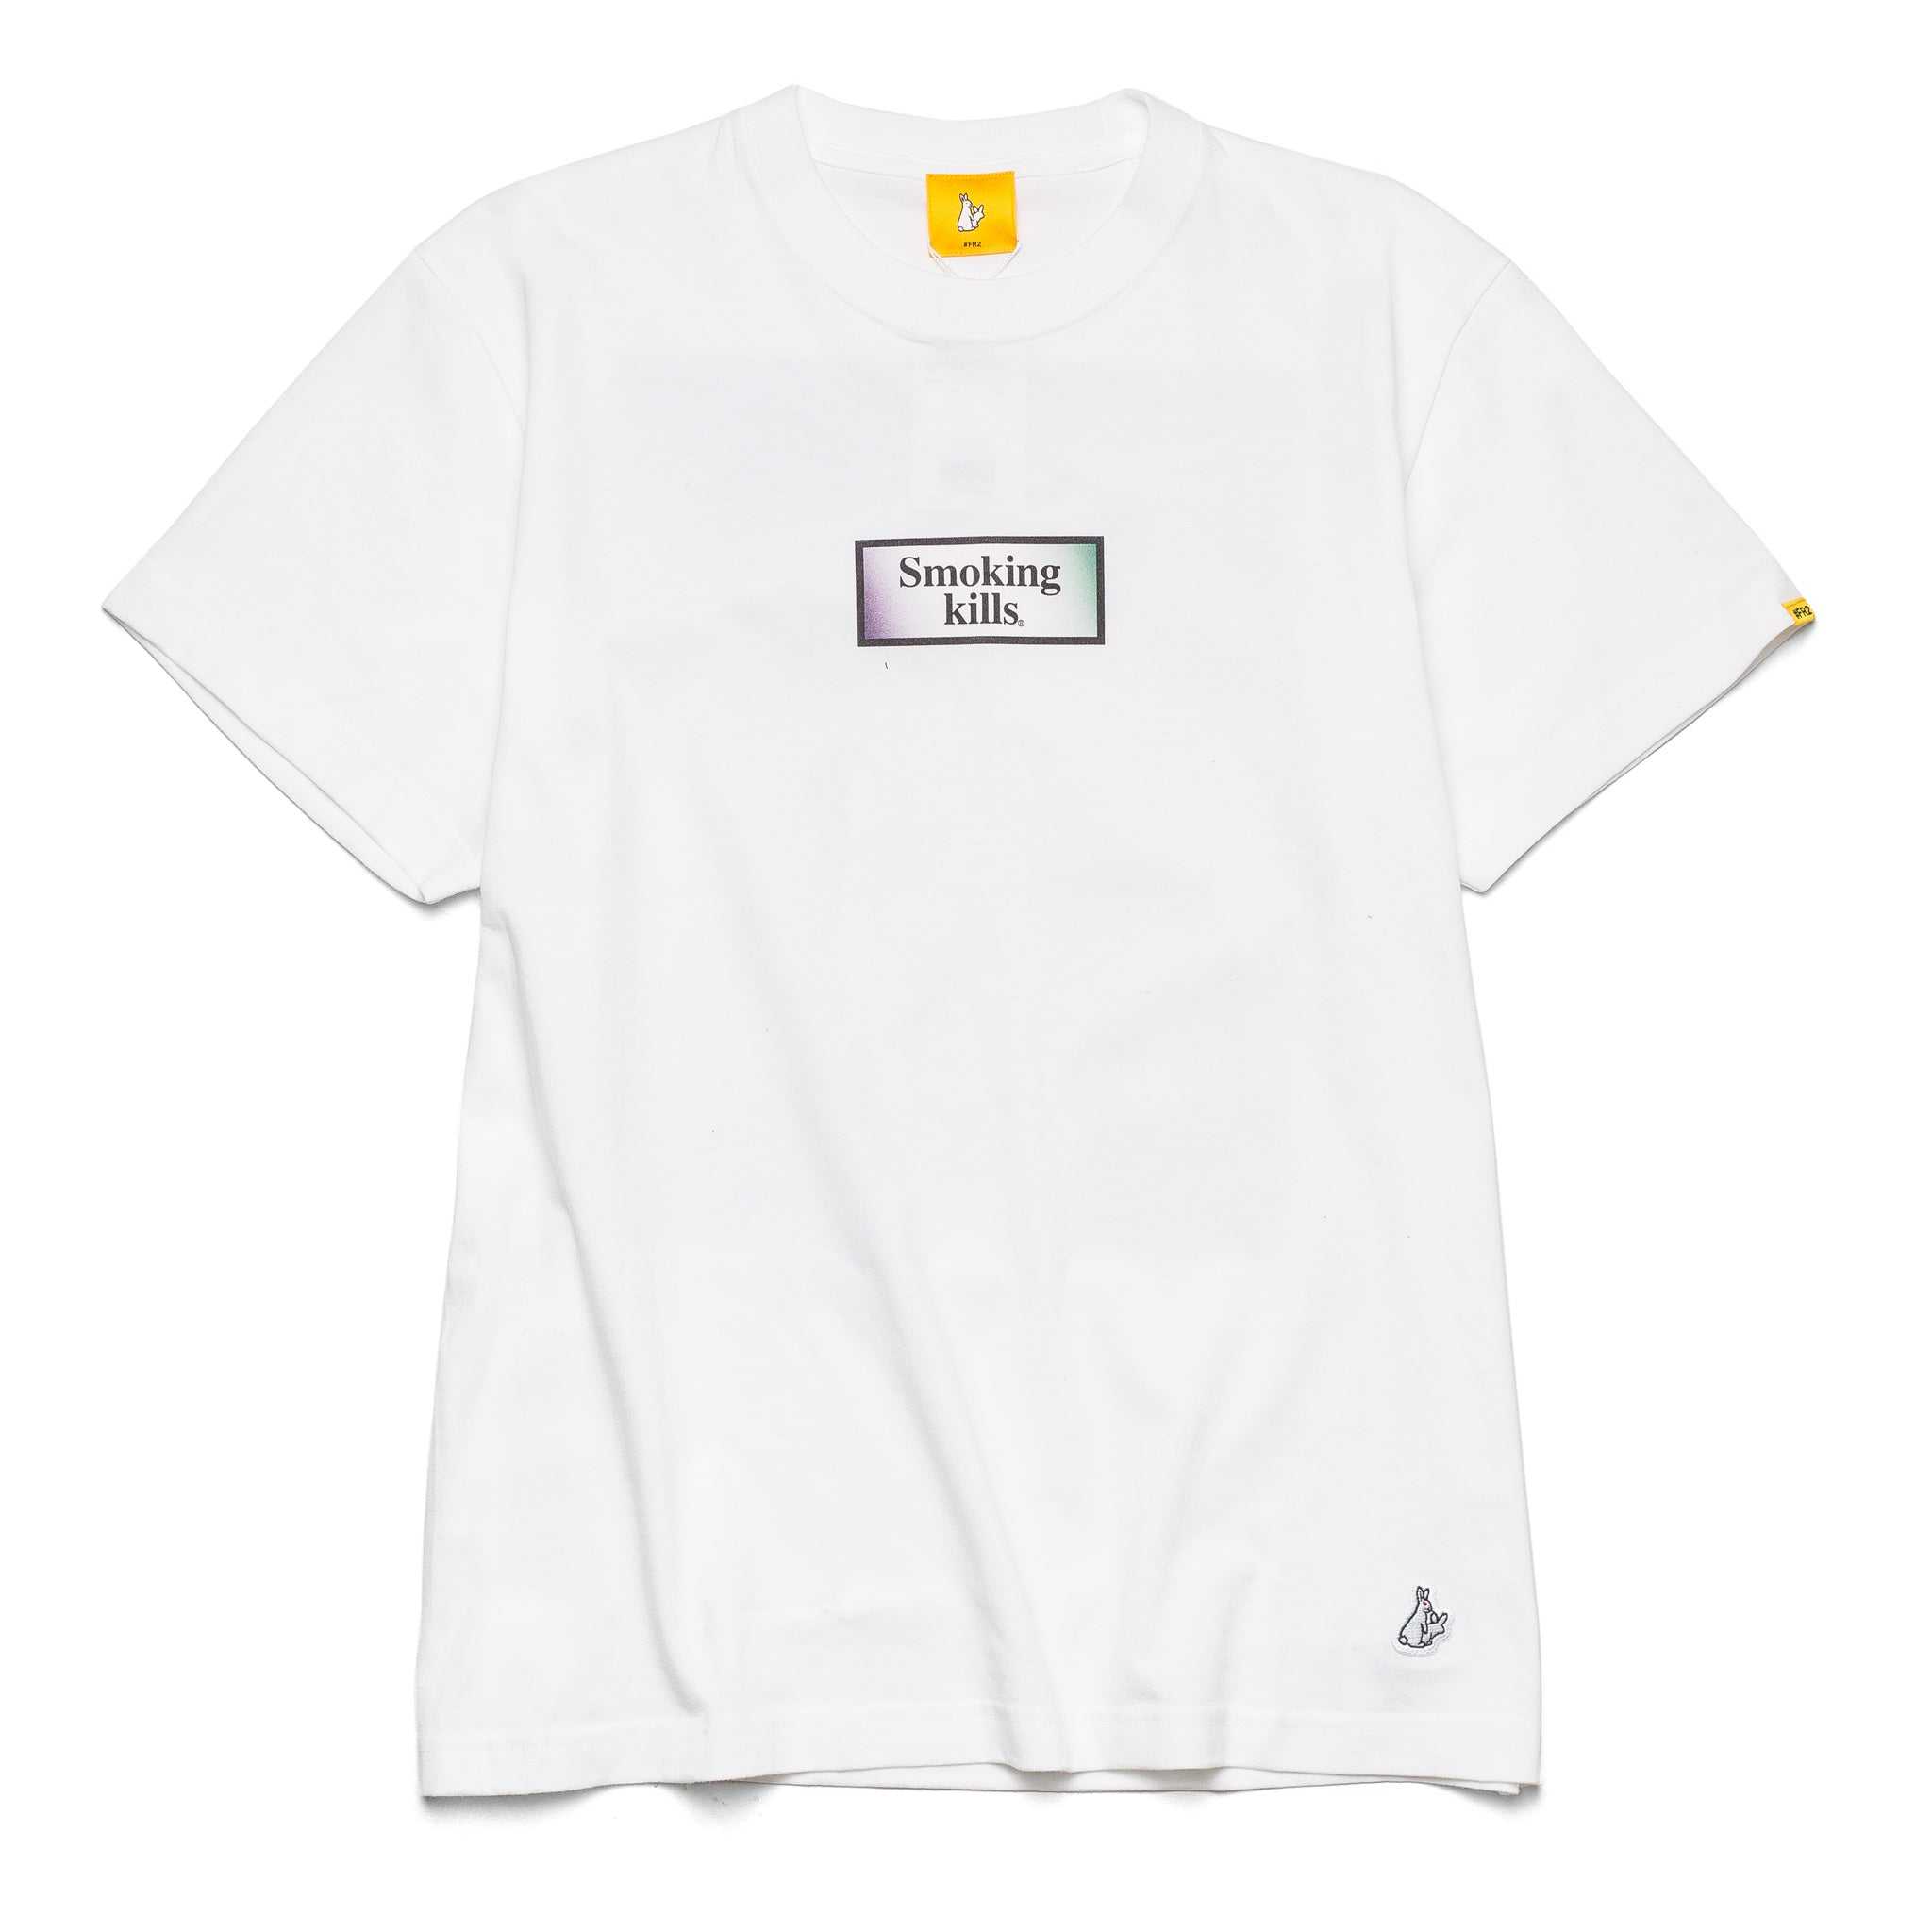 Ukiyoe Smoking Kills Tee White